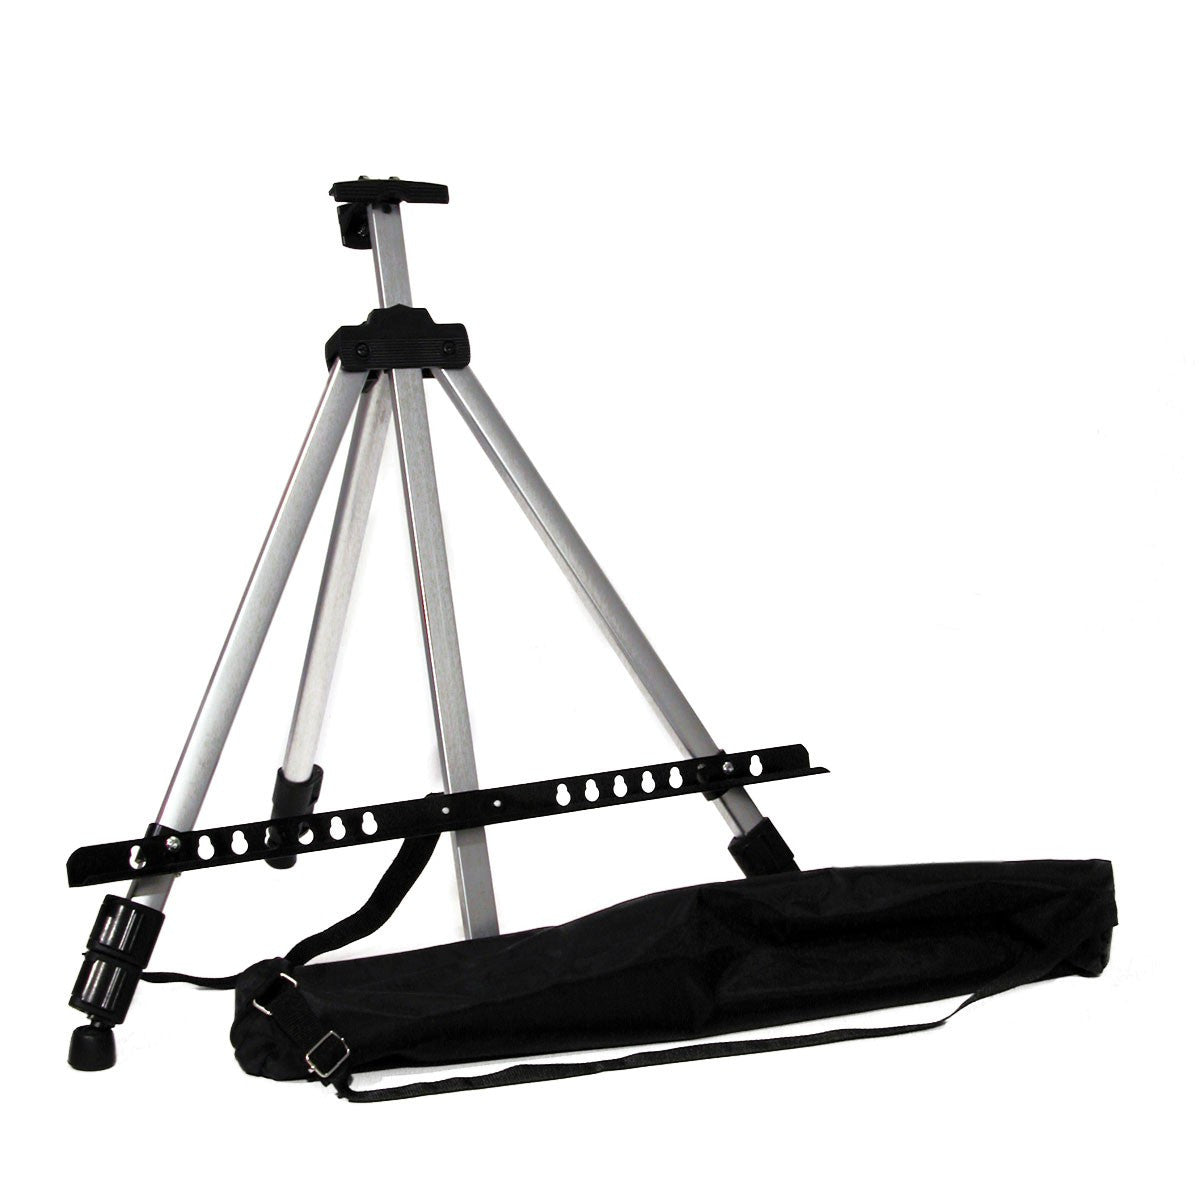 Royal & Langnickel Adjustable Aluminium Easel